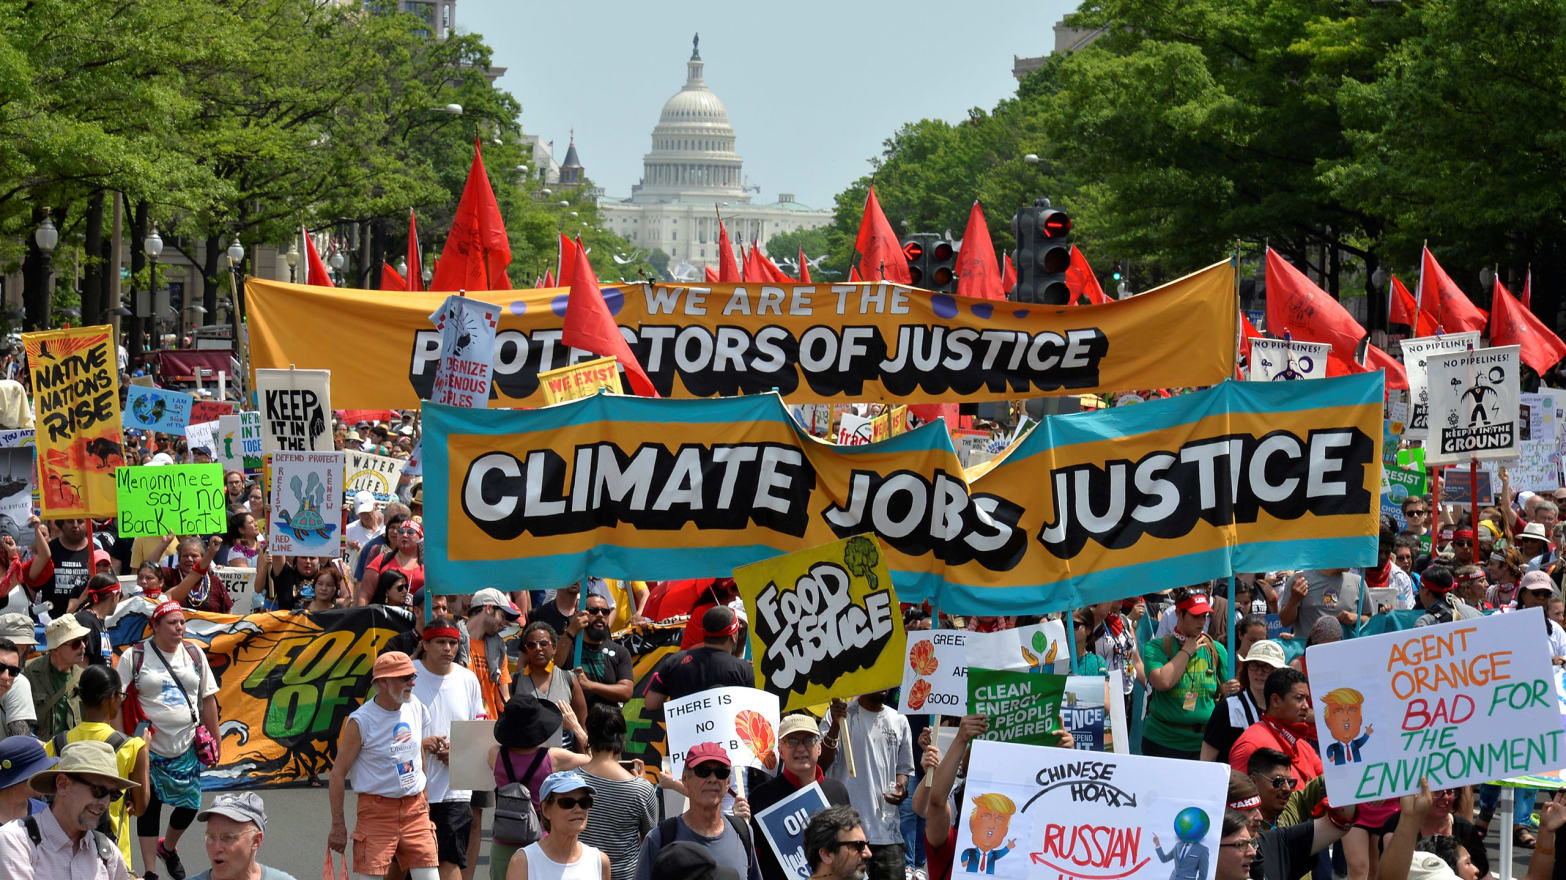 New Research Suggests Climate Marches Sway Public Sentiment